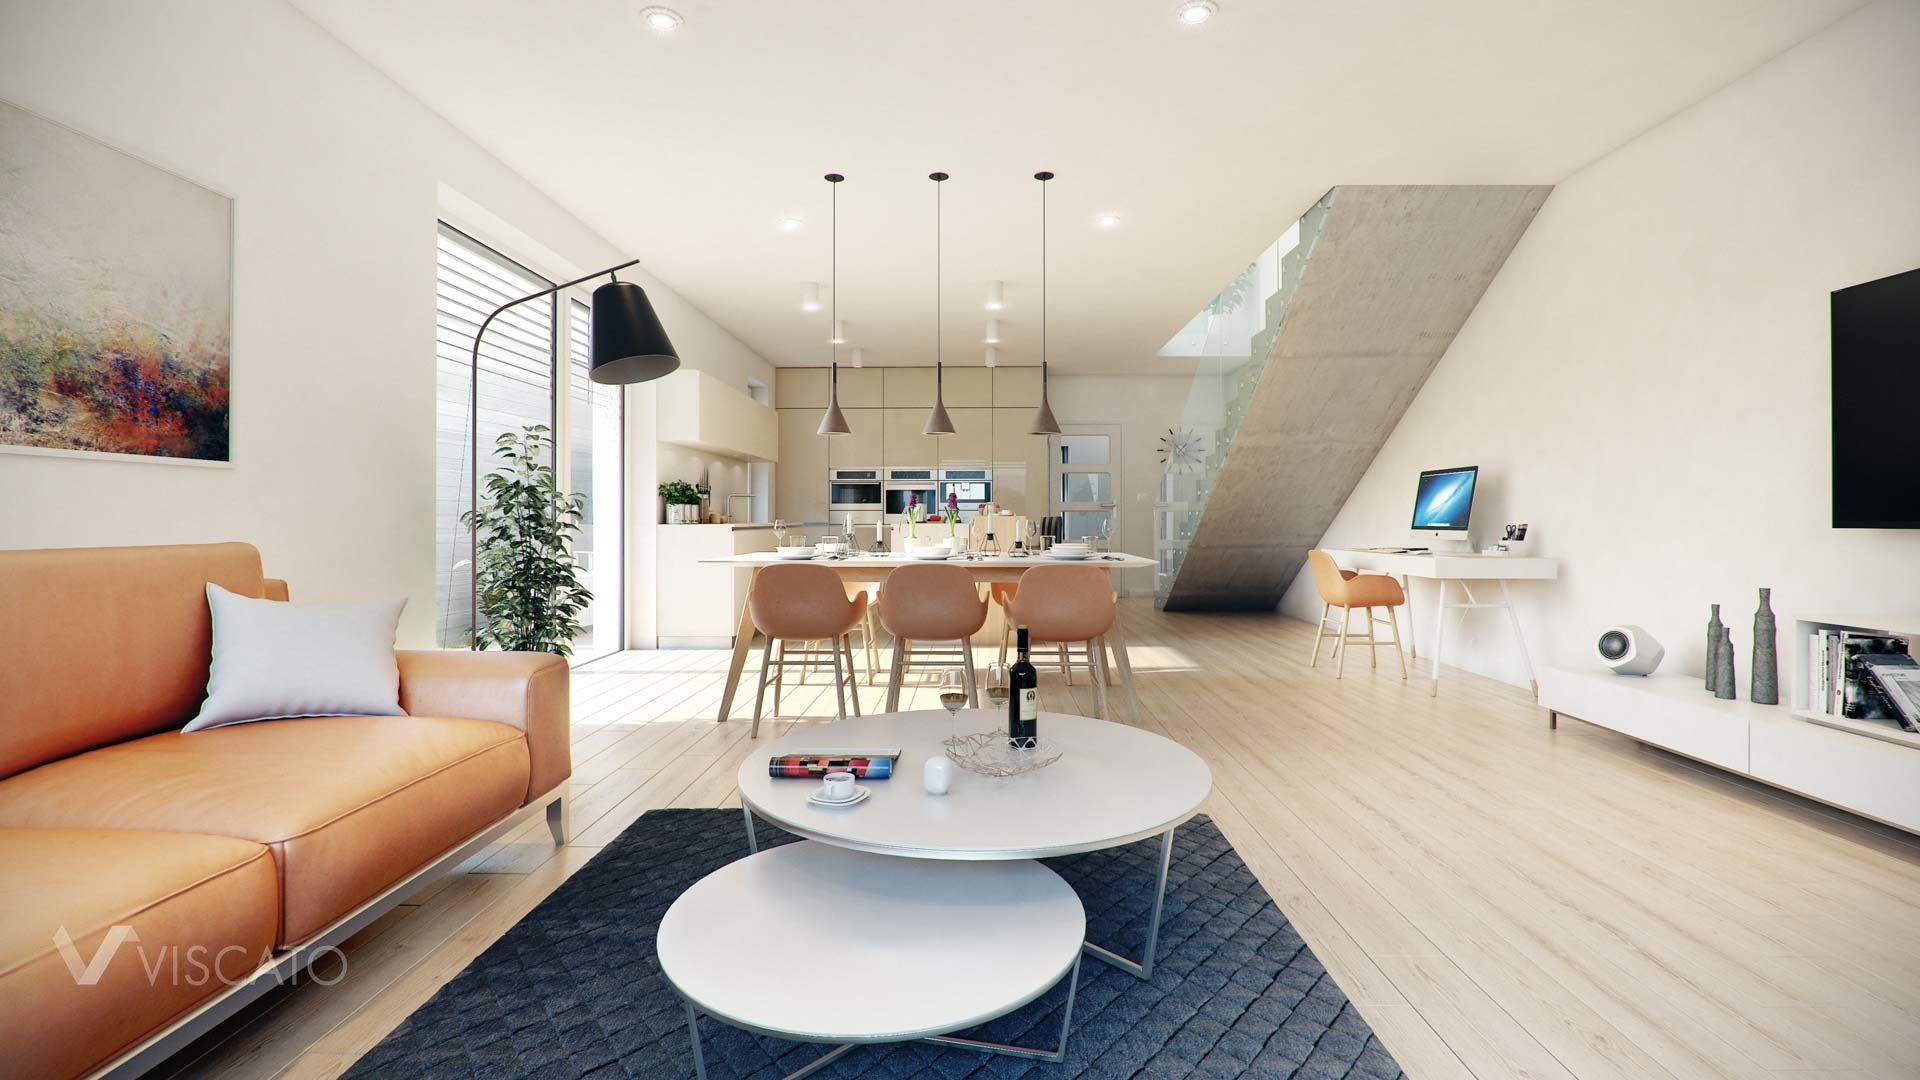 Linz twin house interior visualization of living room with kitchen